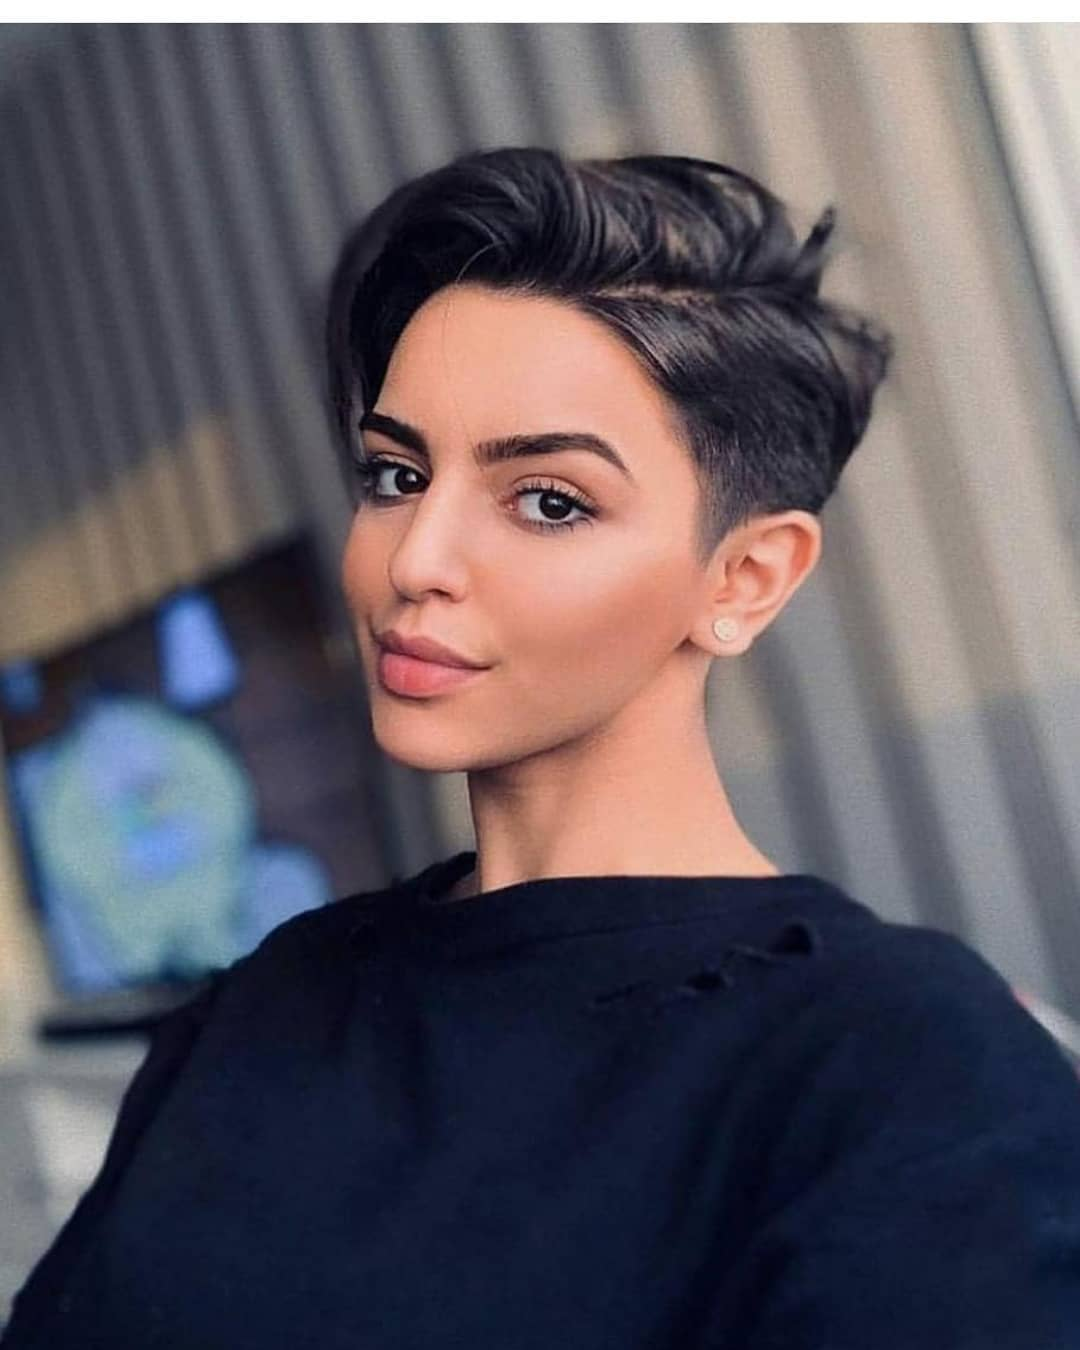 Simple Pixie Haircuts with Straight Hair - Very Short Hairstyle Ideas for Women